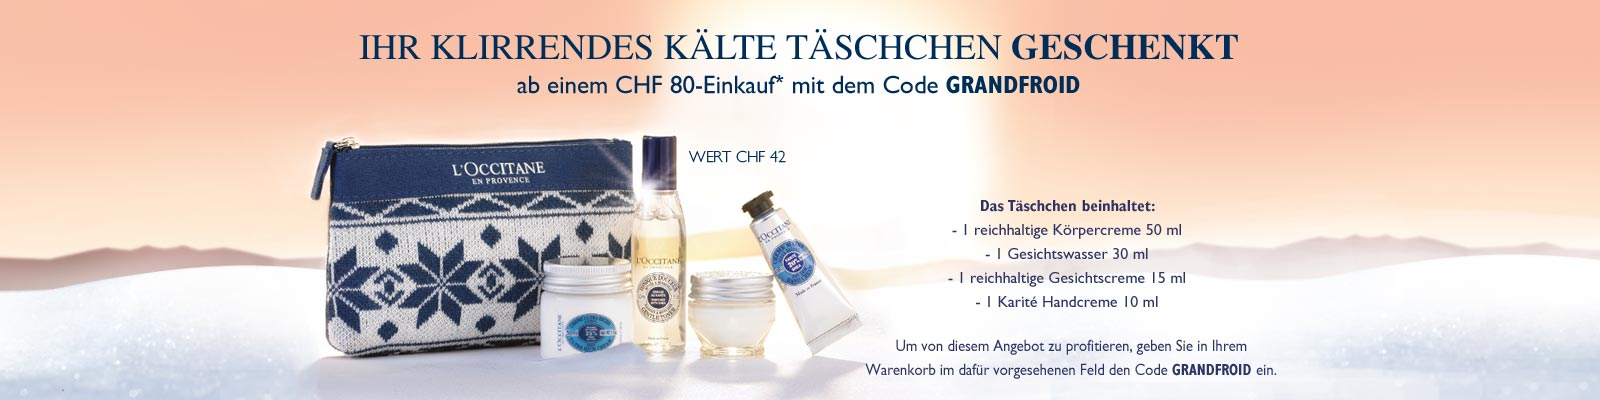 Angebot  - L'Occitane France